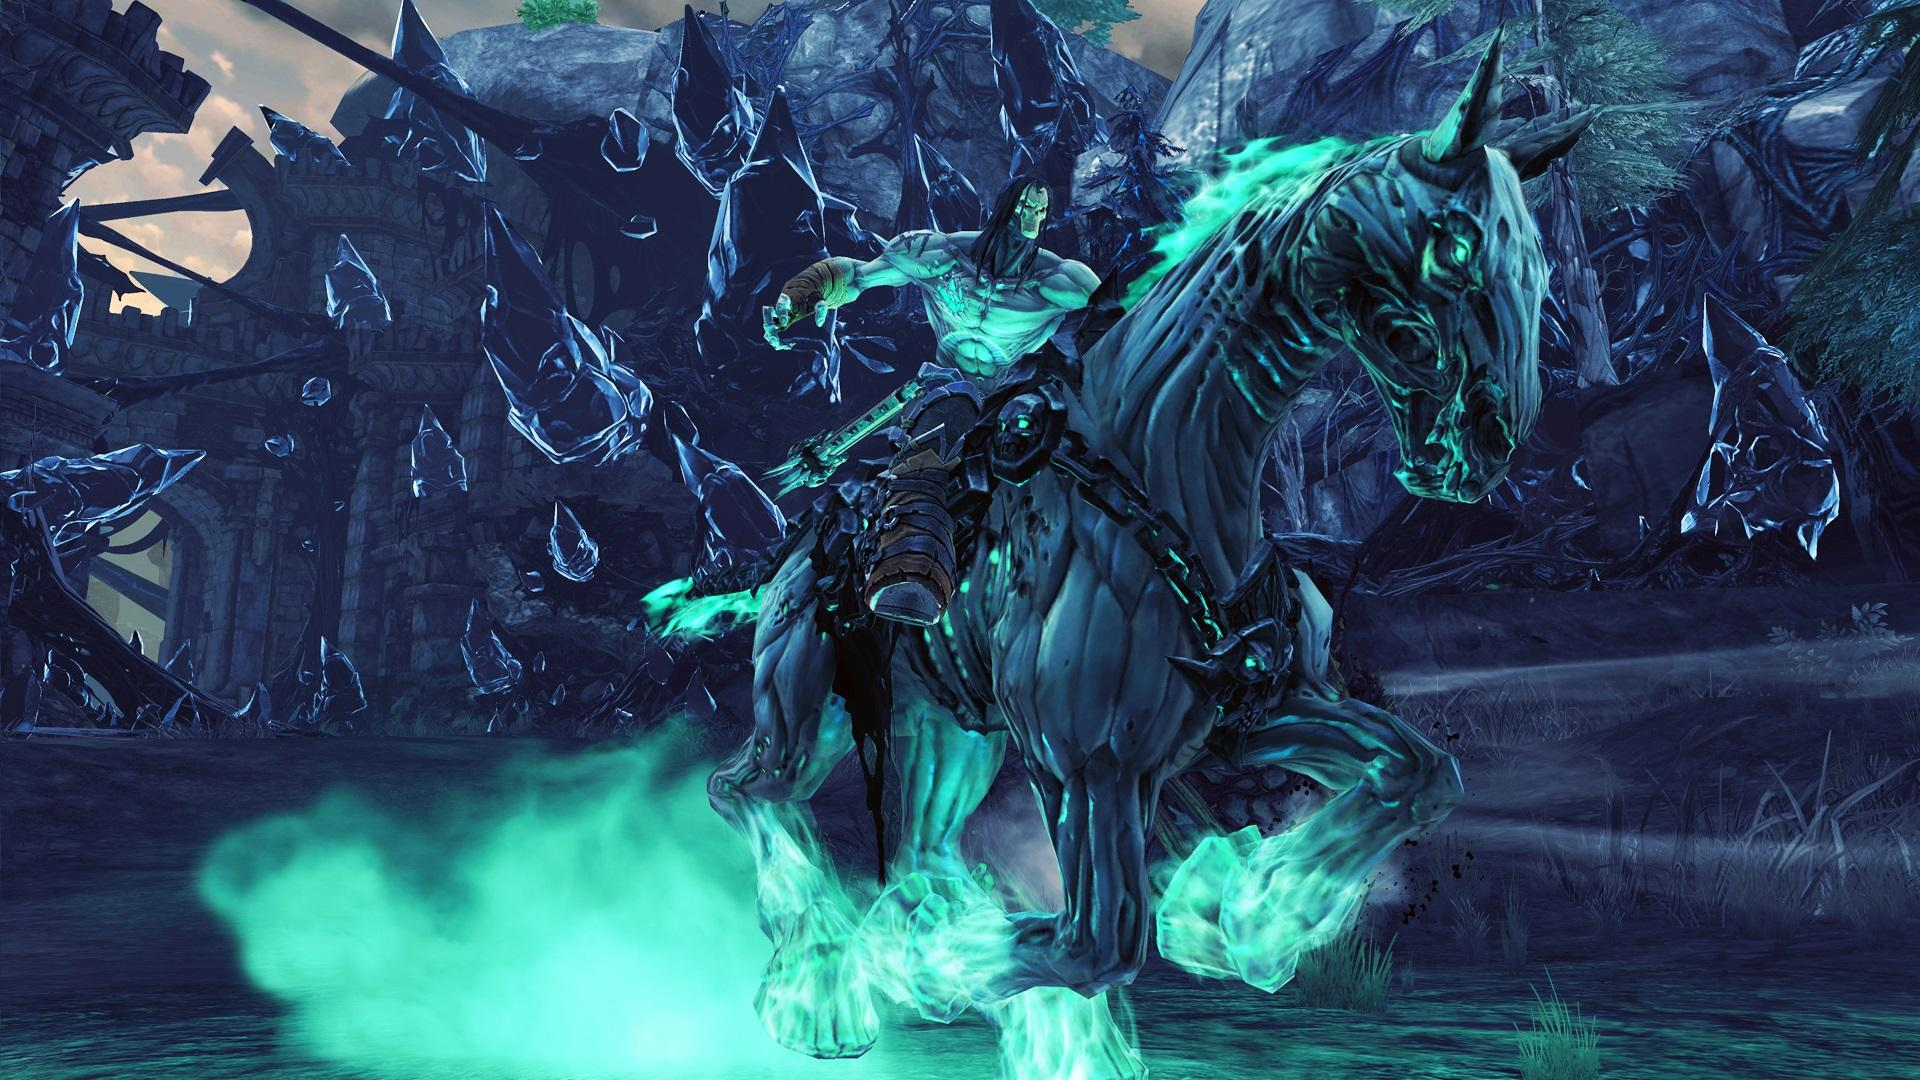 Darksiders Ii Deathinitive Edition Review Just Push Start